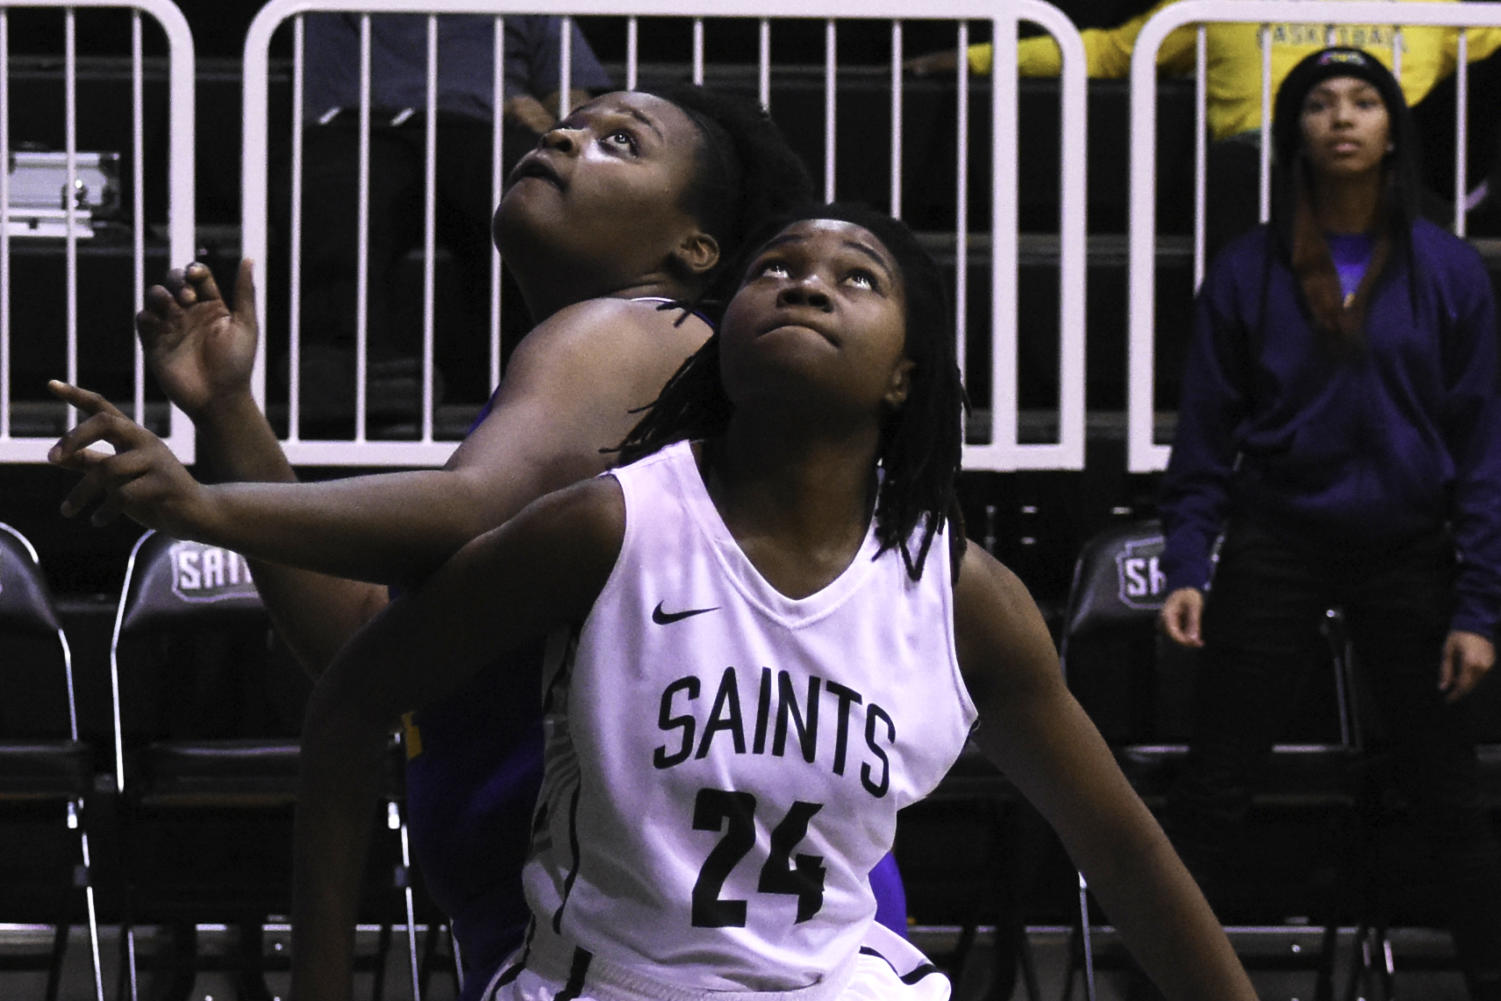 Vonda Cuamba, freshman forward from Maputo, Mozambique, boxes out for a rebound. The Lady Saints squeaked past Garden City Community College on Jan. 14 and brought their record to 14-2 overall on the season. (File Photo)